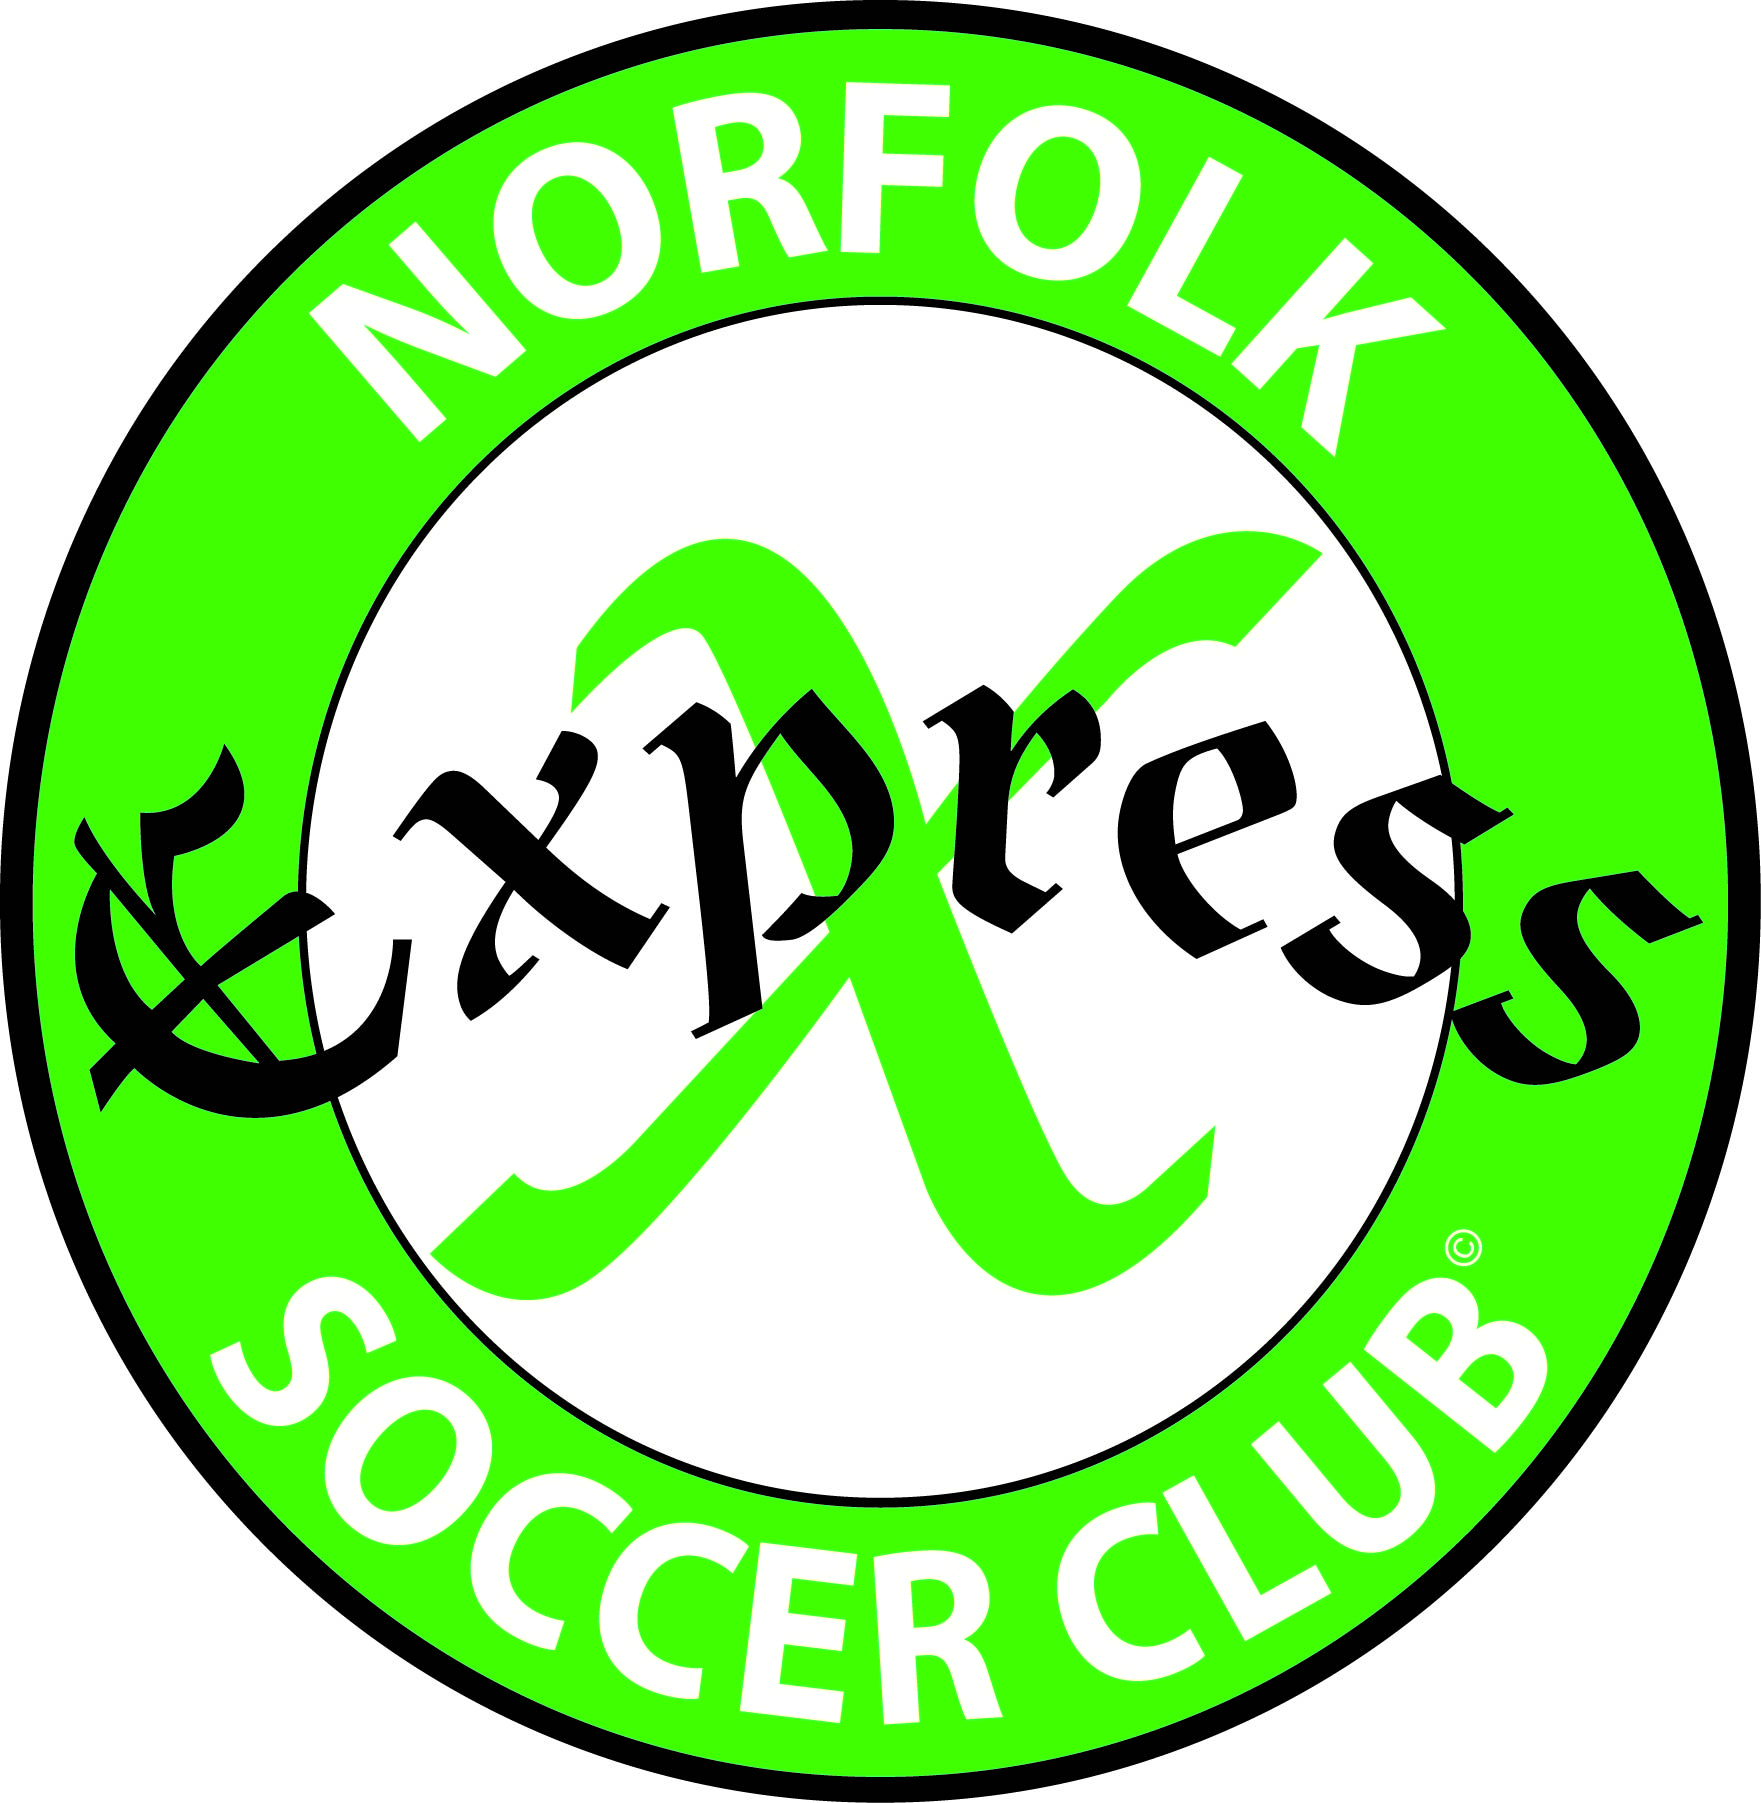 norfolksc